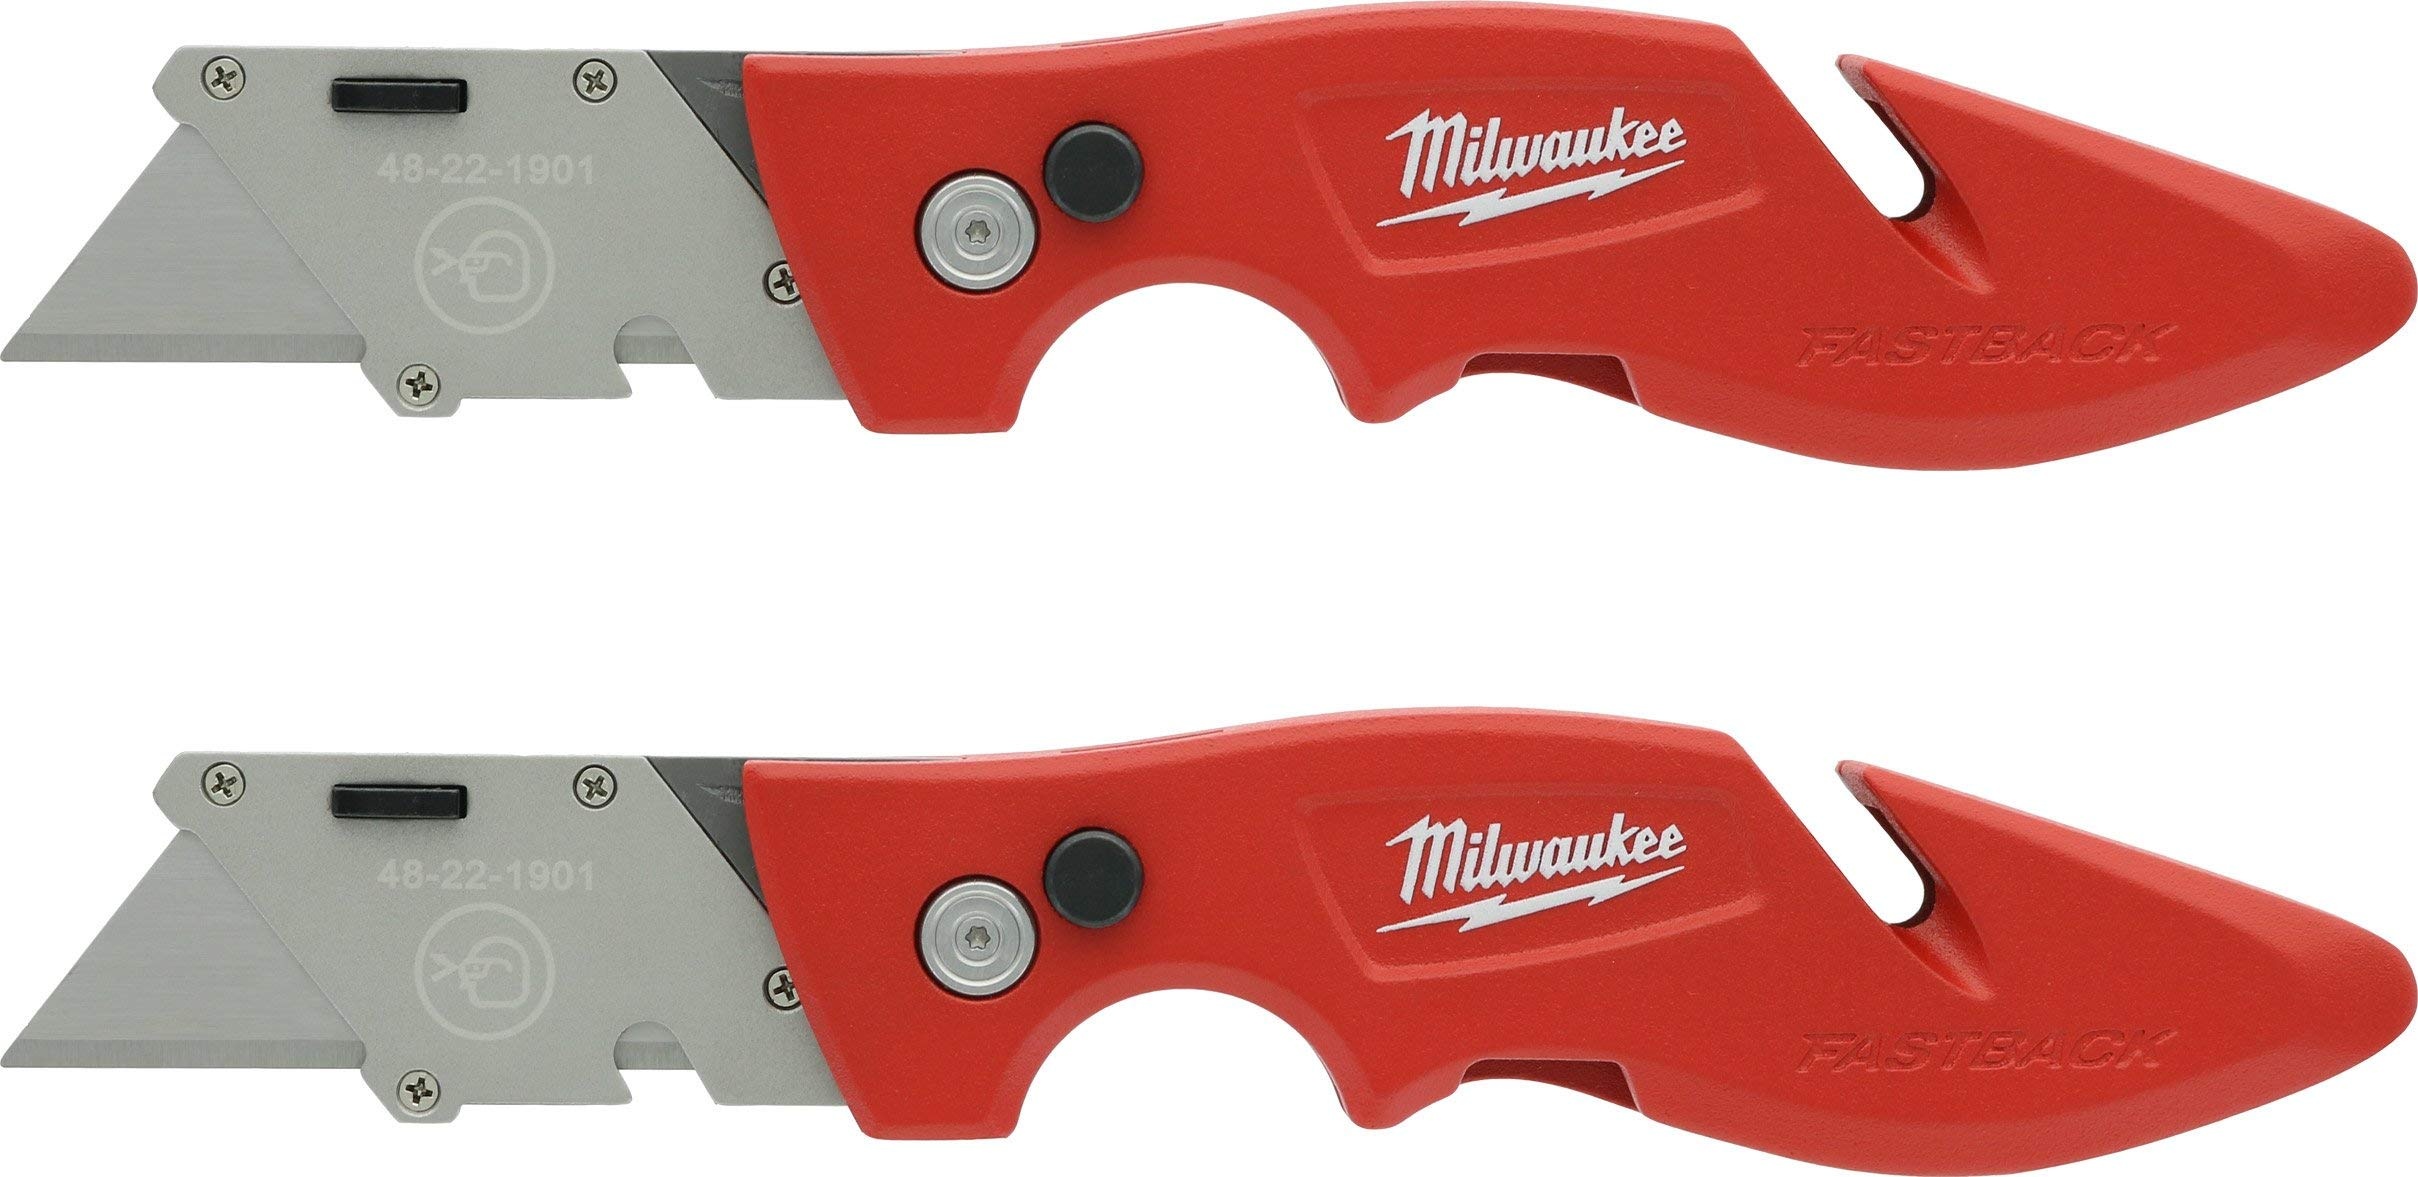 Amazon Com Milwaukee 48 22 1901f Fastback Utility Knife With Wire Stripping Compartment And Gut Hook 2 Pack Of 48 22 1901 Kitchen Dining